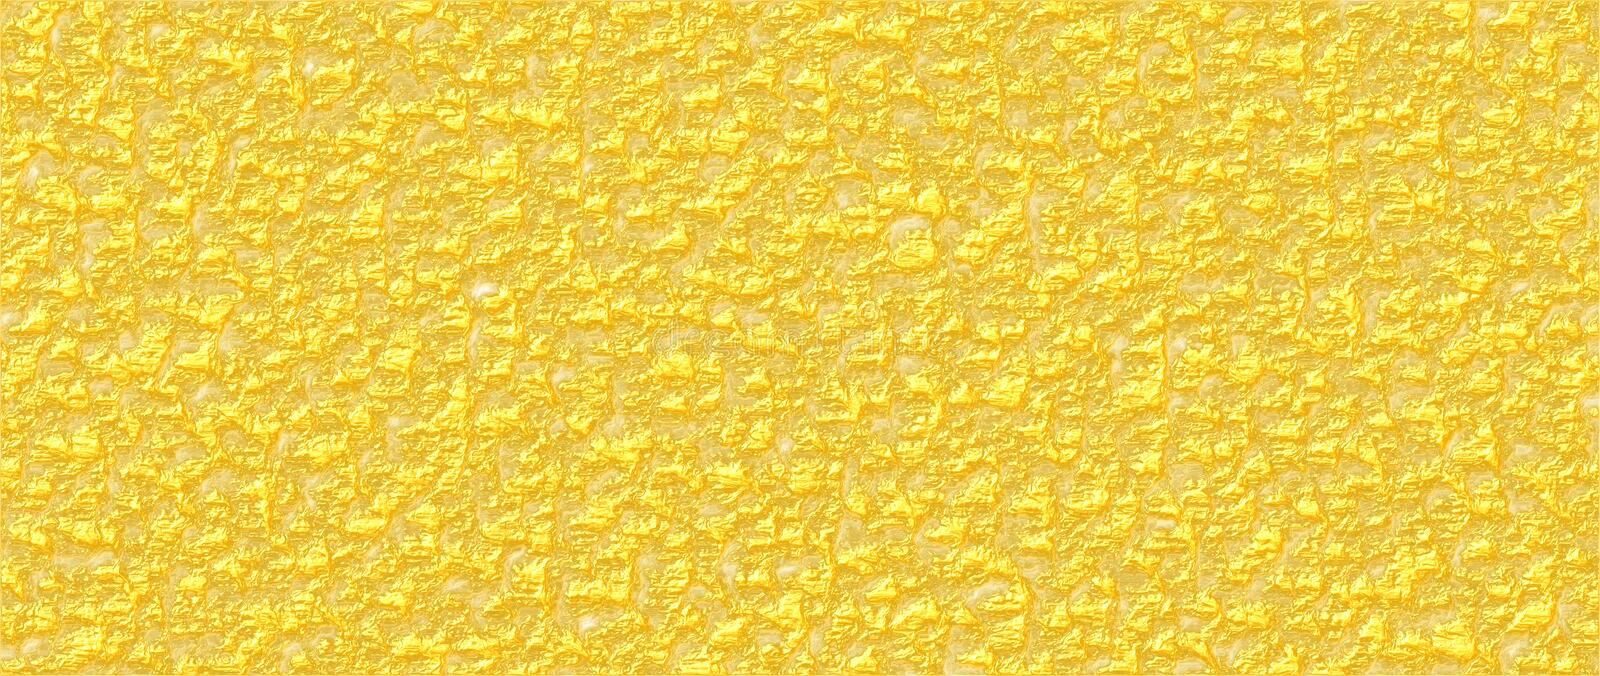 Wrinkled varnish rough background in yellow mango color. Wrinkled varnish rough background abstract vector graphic in yellow mango color. Can be used as vector illustration